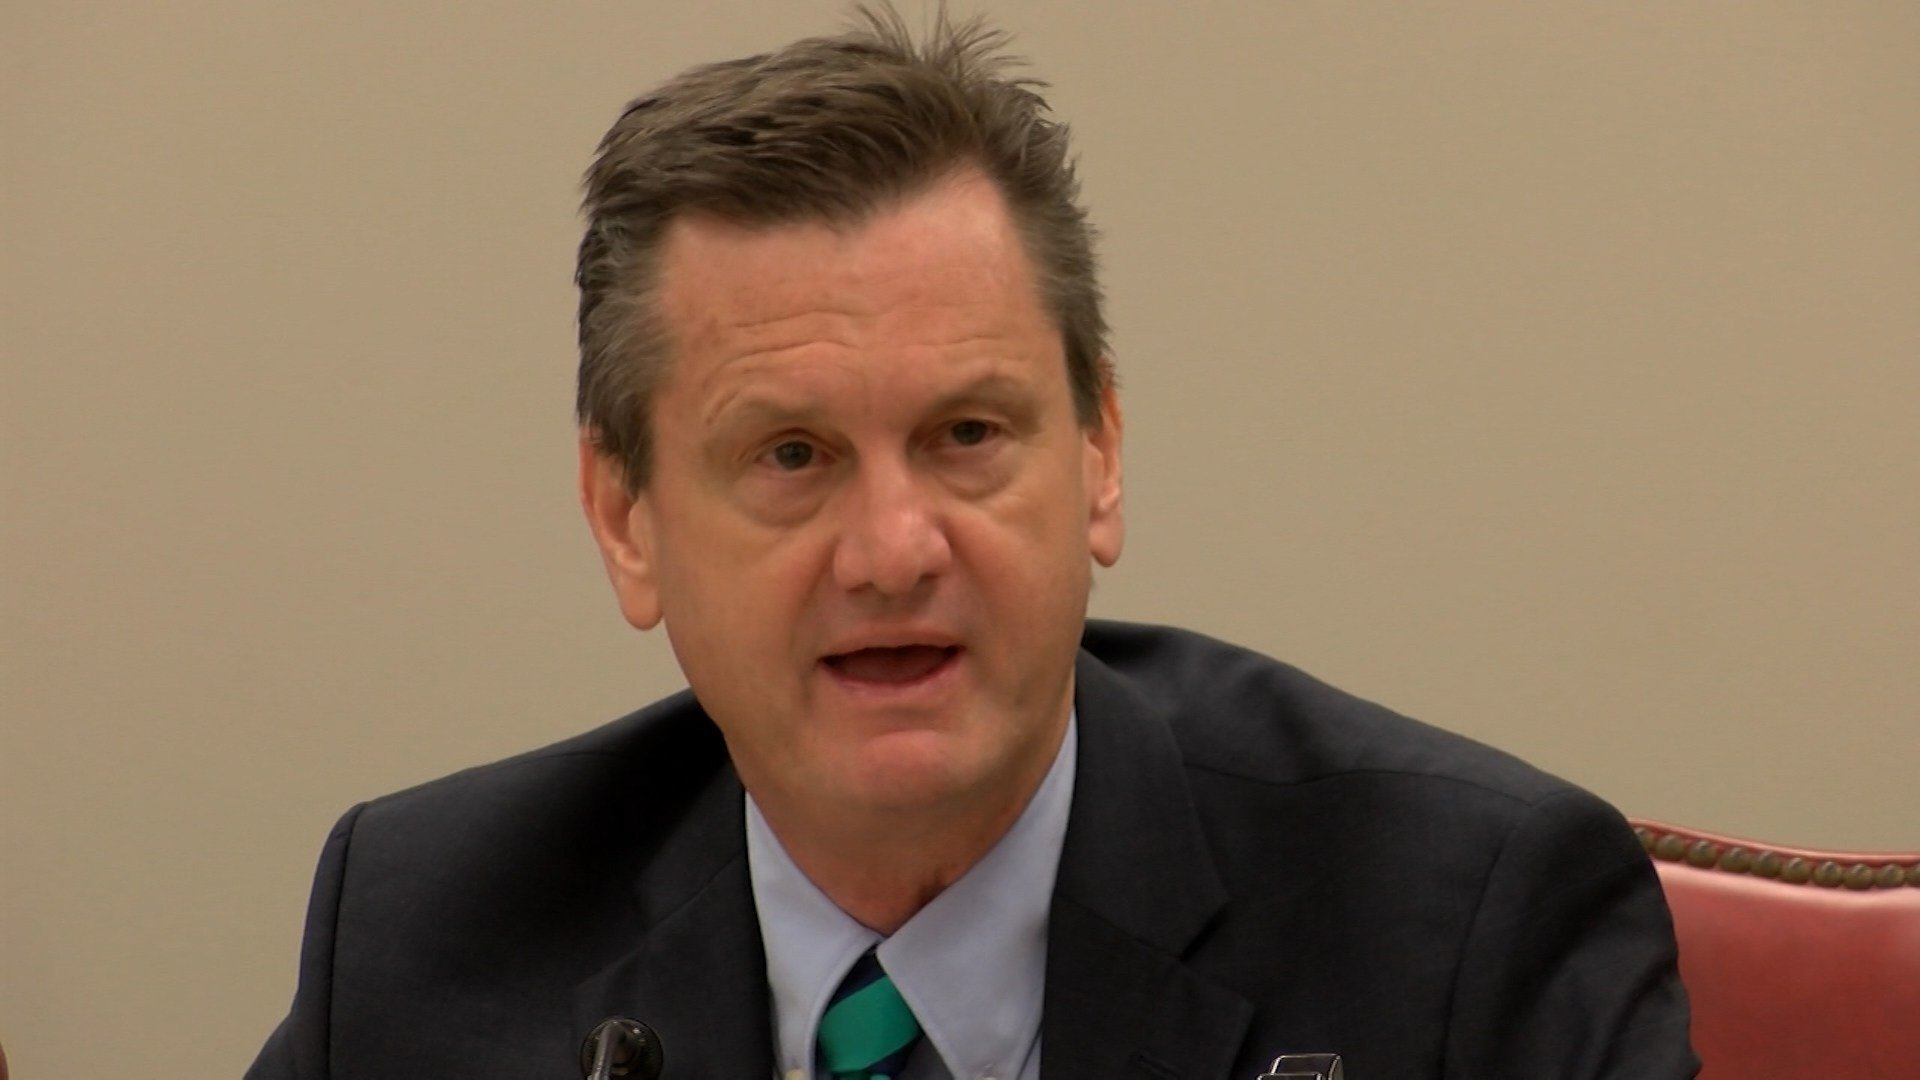 Senator Tom Davis said he wrote the bill for those who need pain relief without using stronger opioid medications.